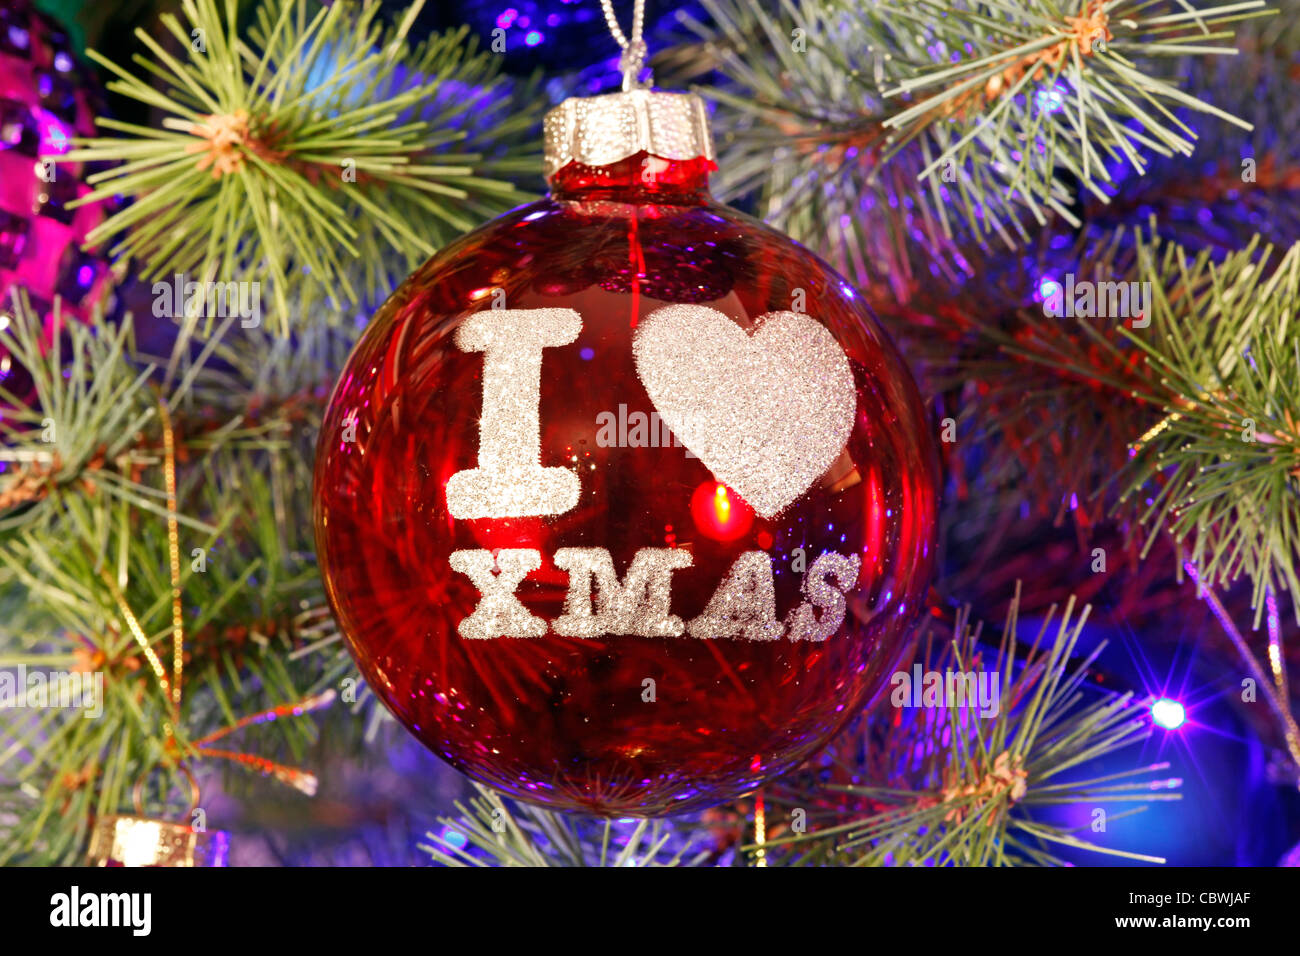 i love xmas bauble and christmas decorations with lights on a xmas tree stock image